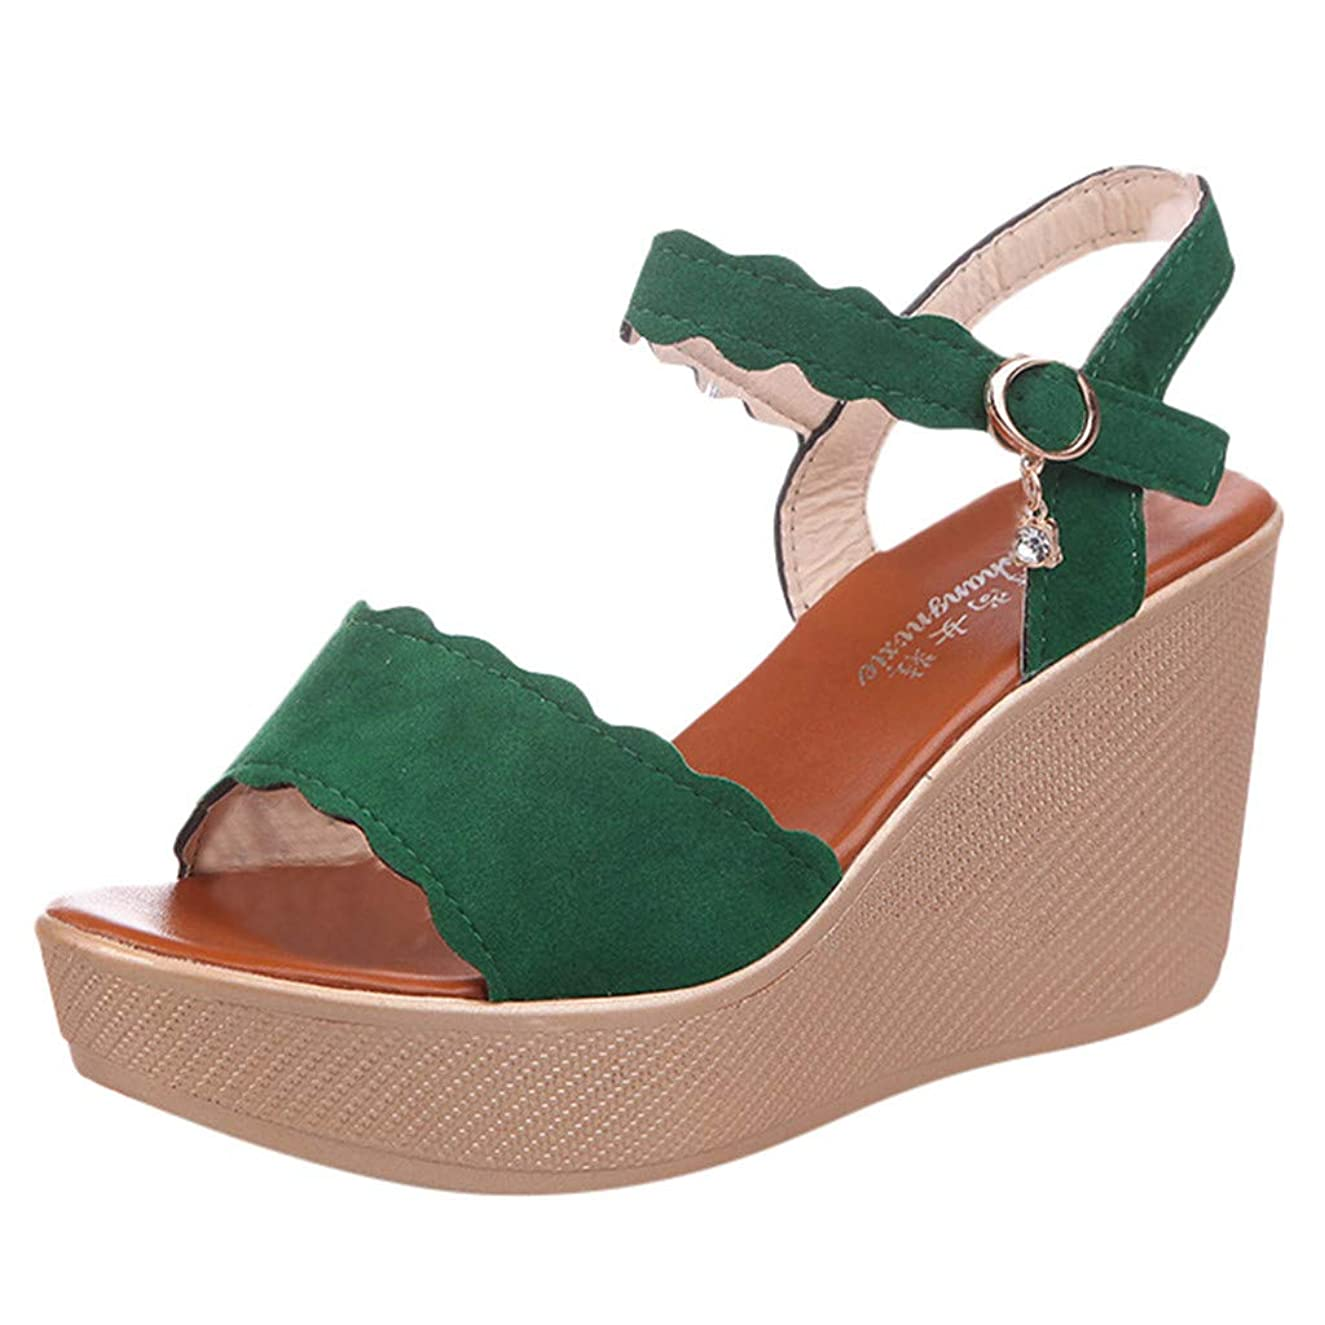 Women Summer Fish Mouth lacework Buckle Strap High Heel Wedges Shoes Pendant Hand Woven Sandals